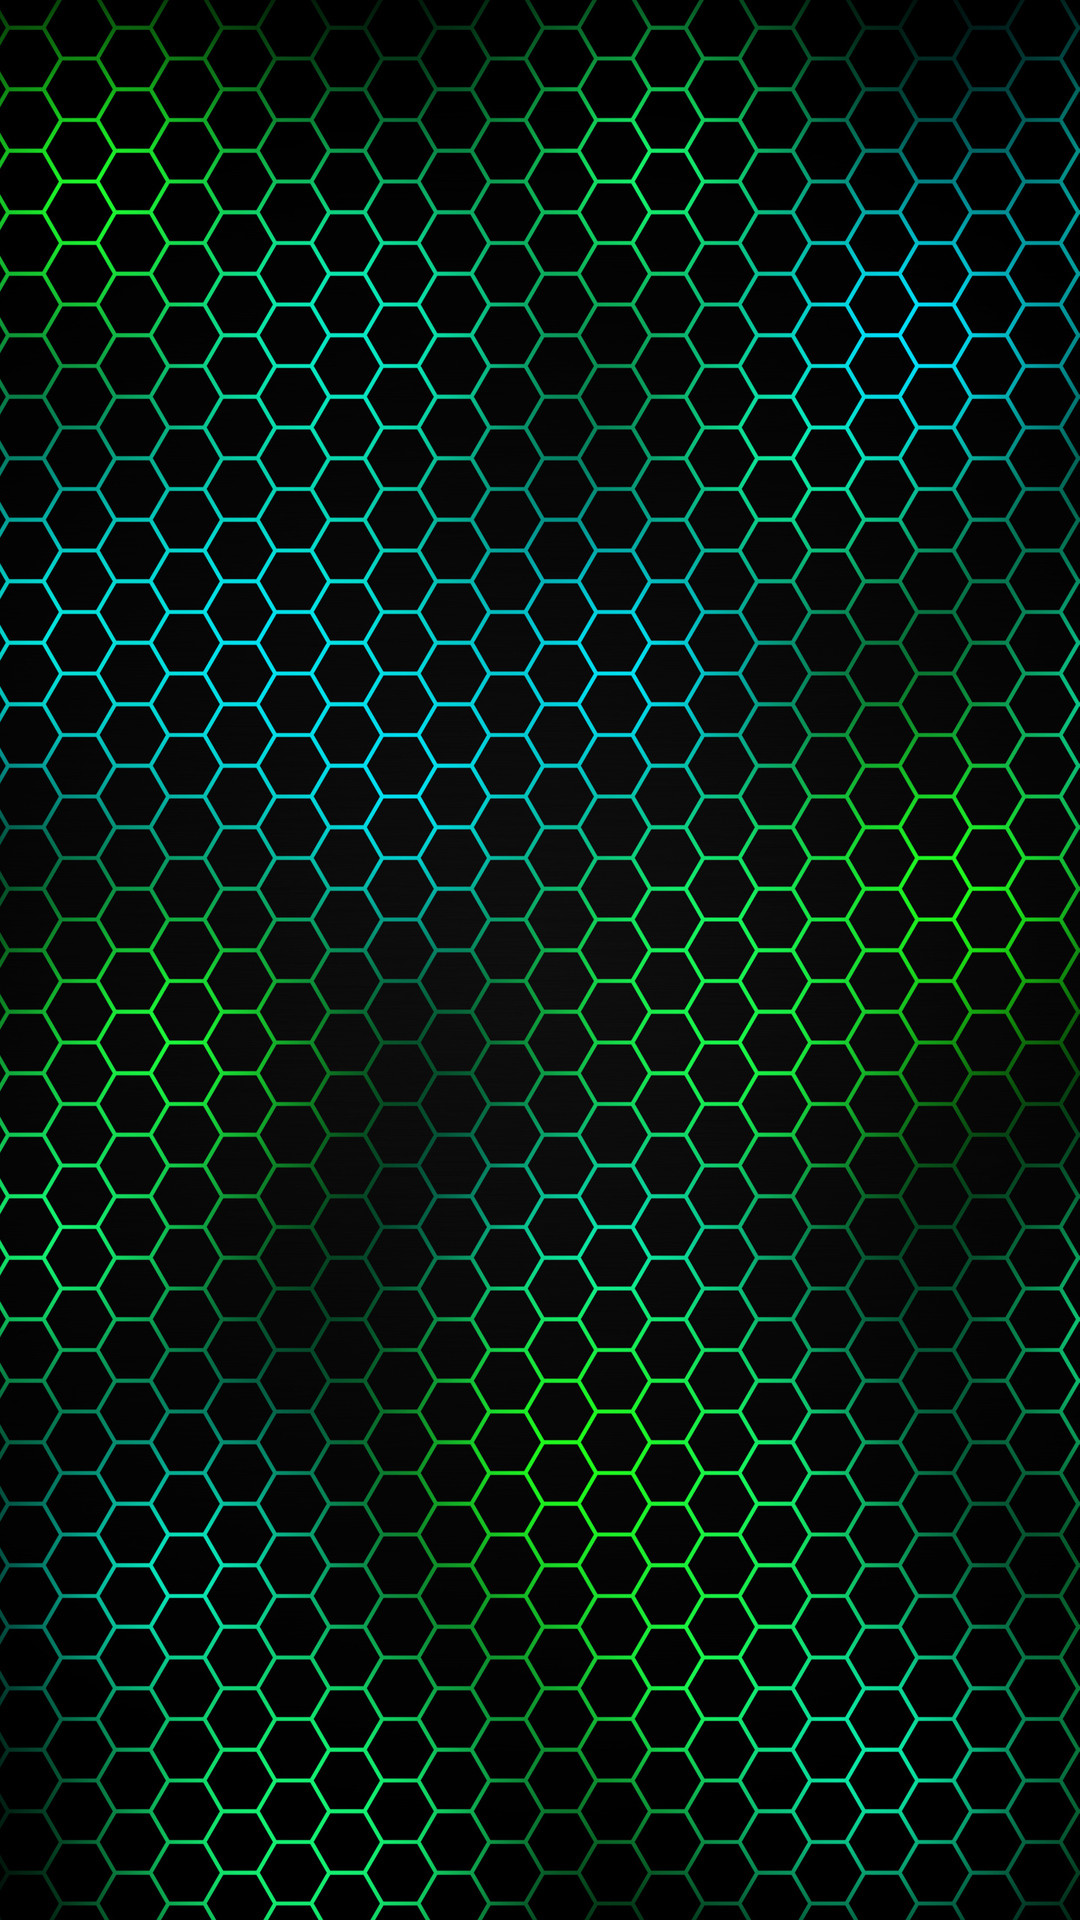 Res: 1080x1920, Blue And Green Hexagon Pattern Wallpaper